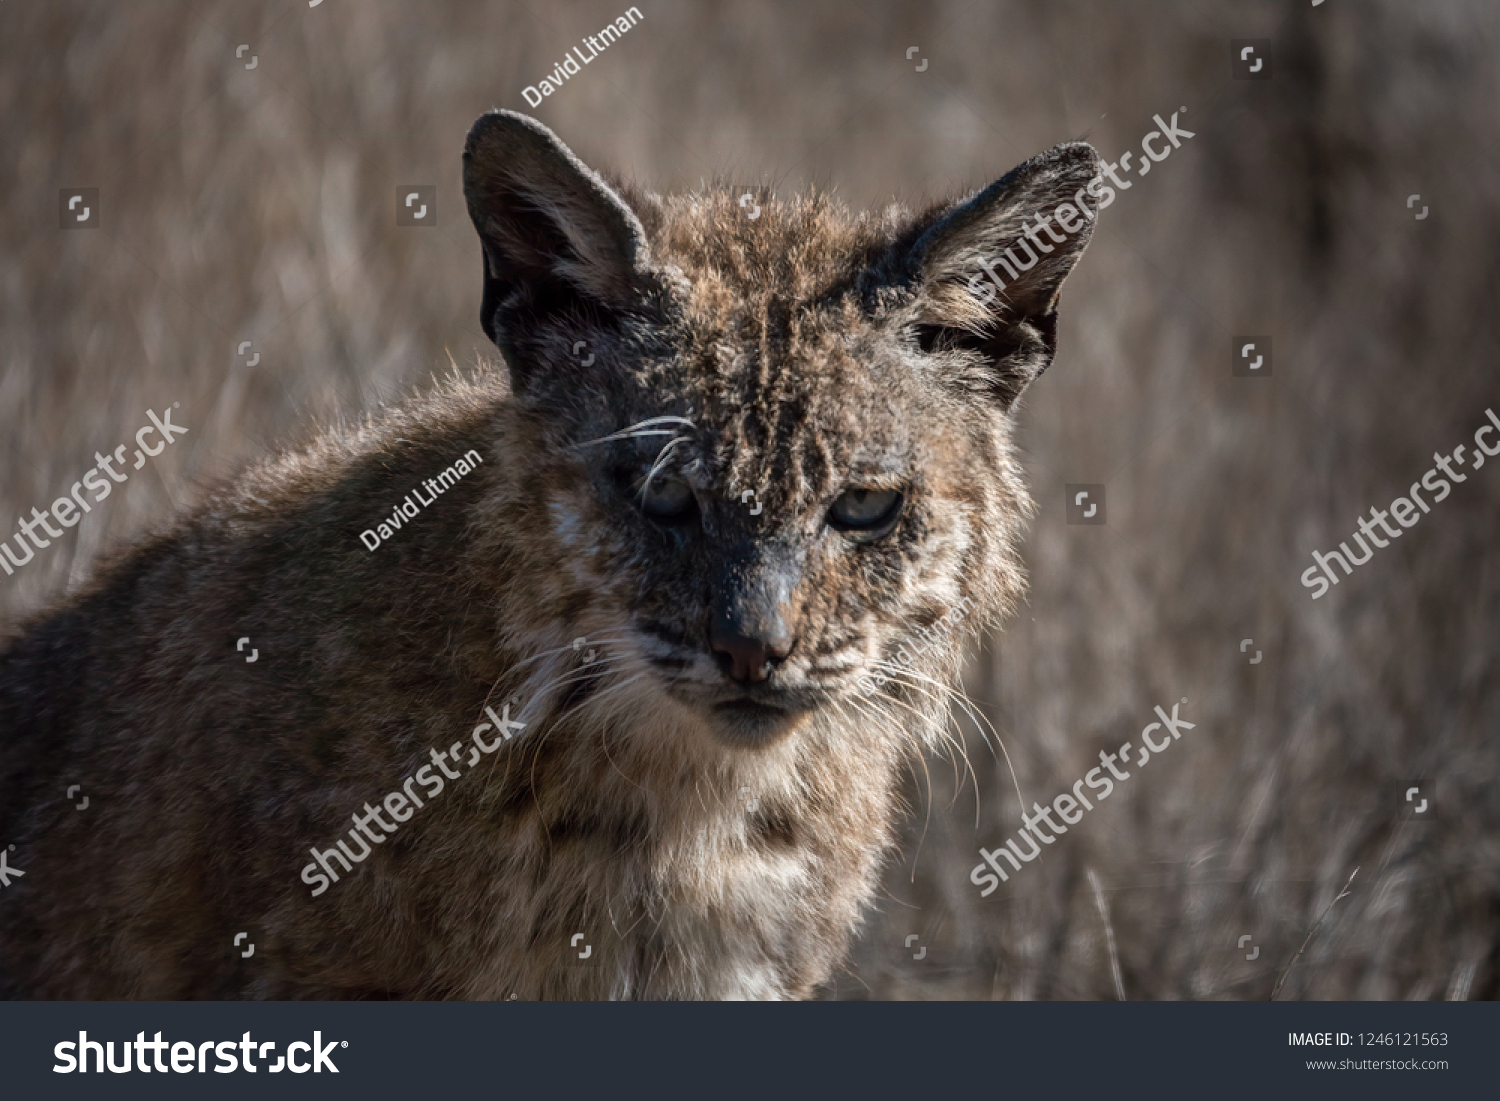 Mange (feline scabies), in wild Bobcats infected with the mite Notoedres cati, is epidemic in some California counties. Exposure to rat and gopher poison may predispose the cats to this fatal illness.